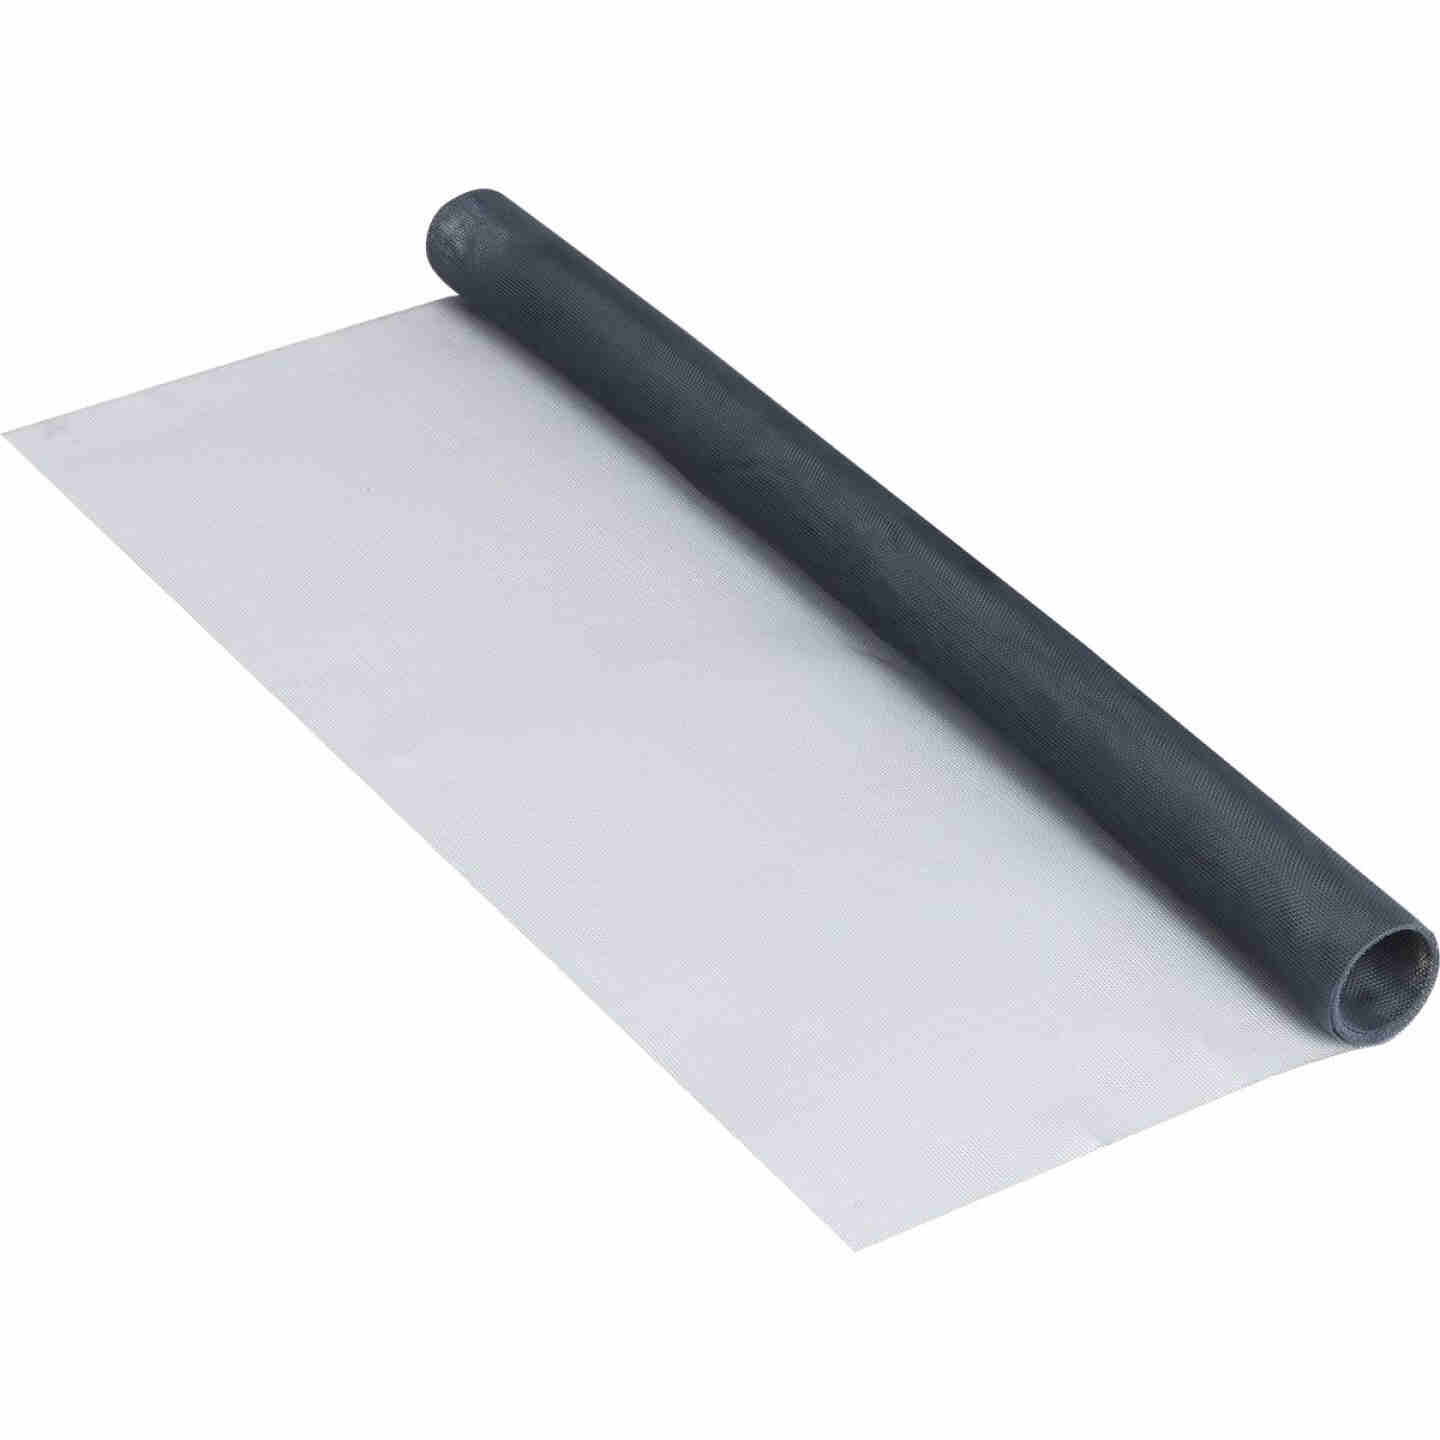 Phifer 48 In. x 84 In. Charcoal Aluminum Screen Ready Rolls Image 3